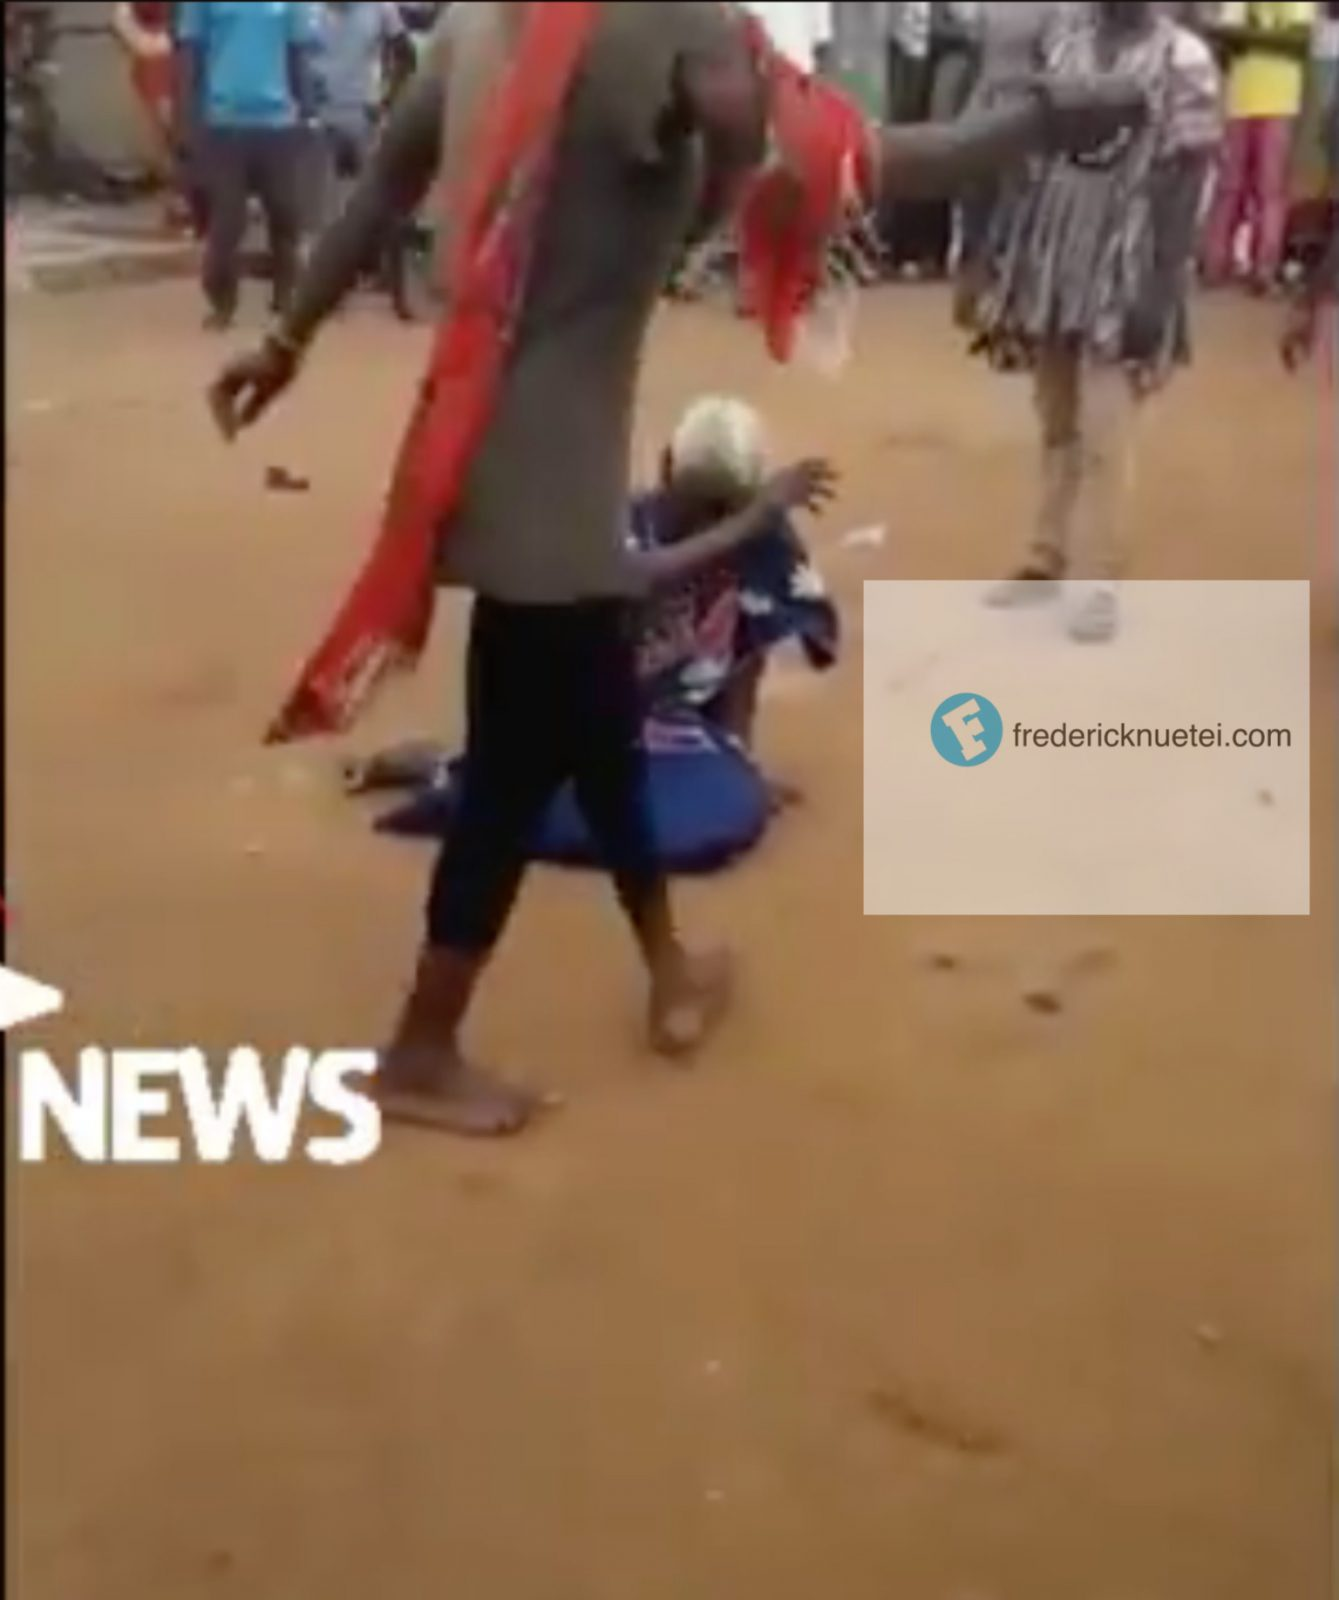 An Old Woman Lynched On Suspicion Of Witchcraft